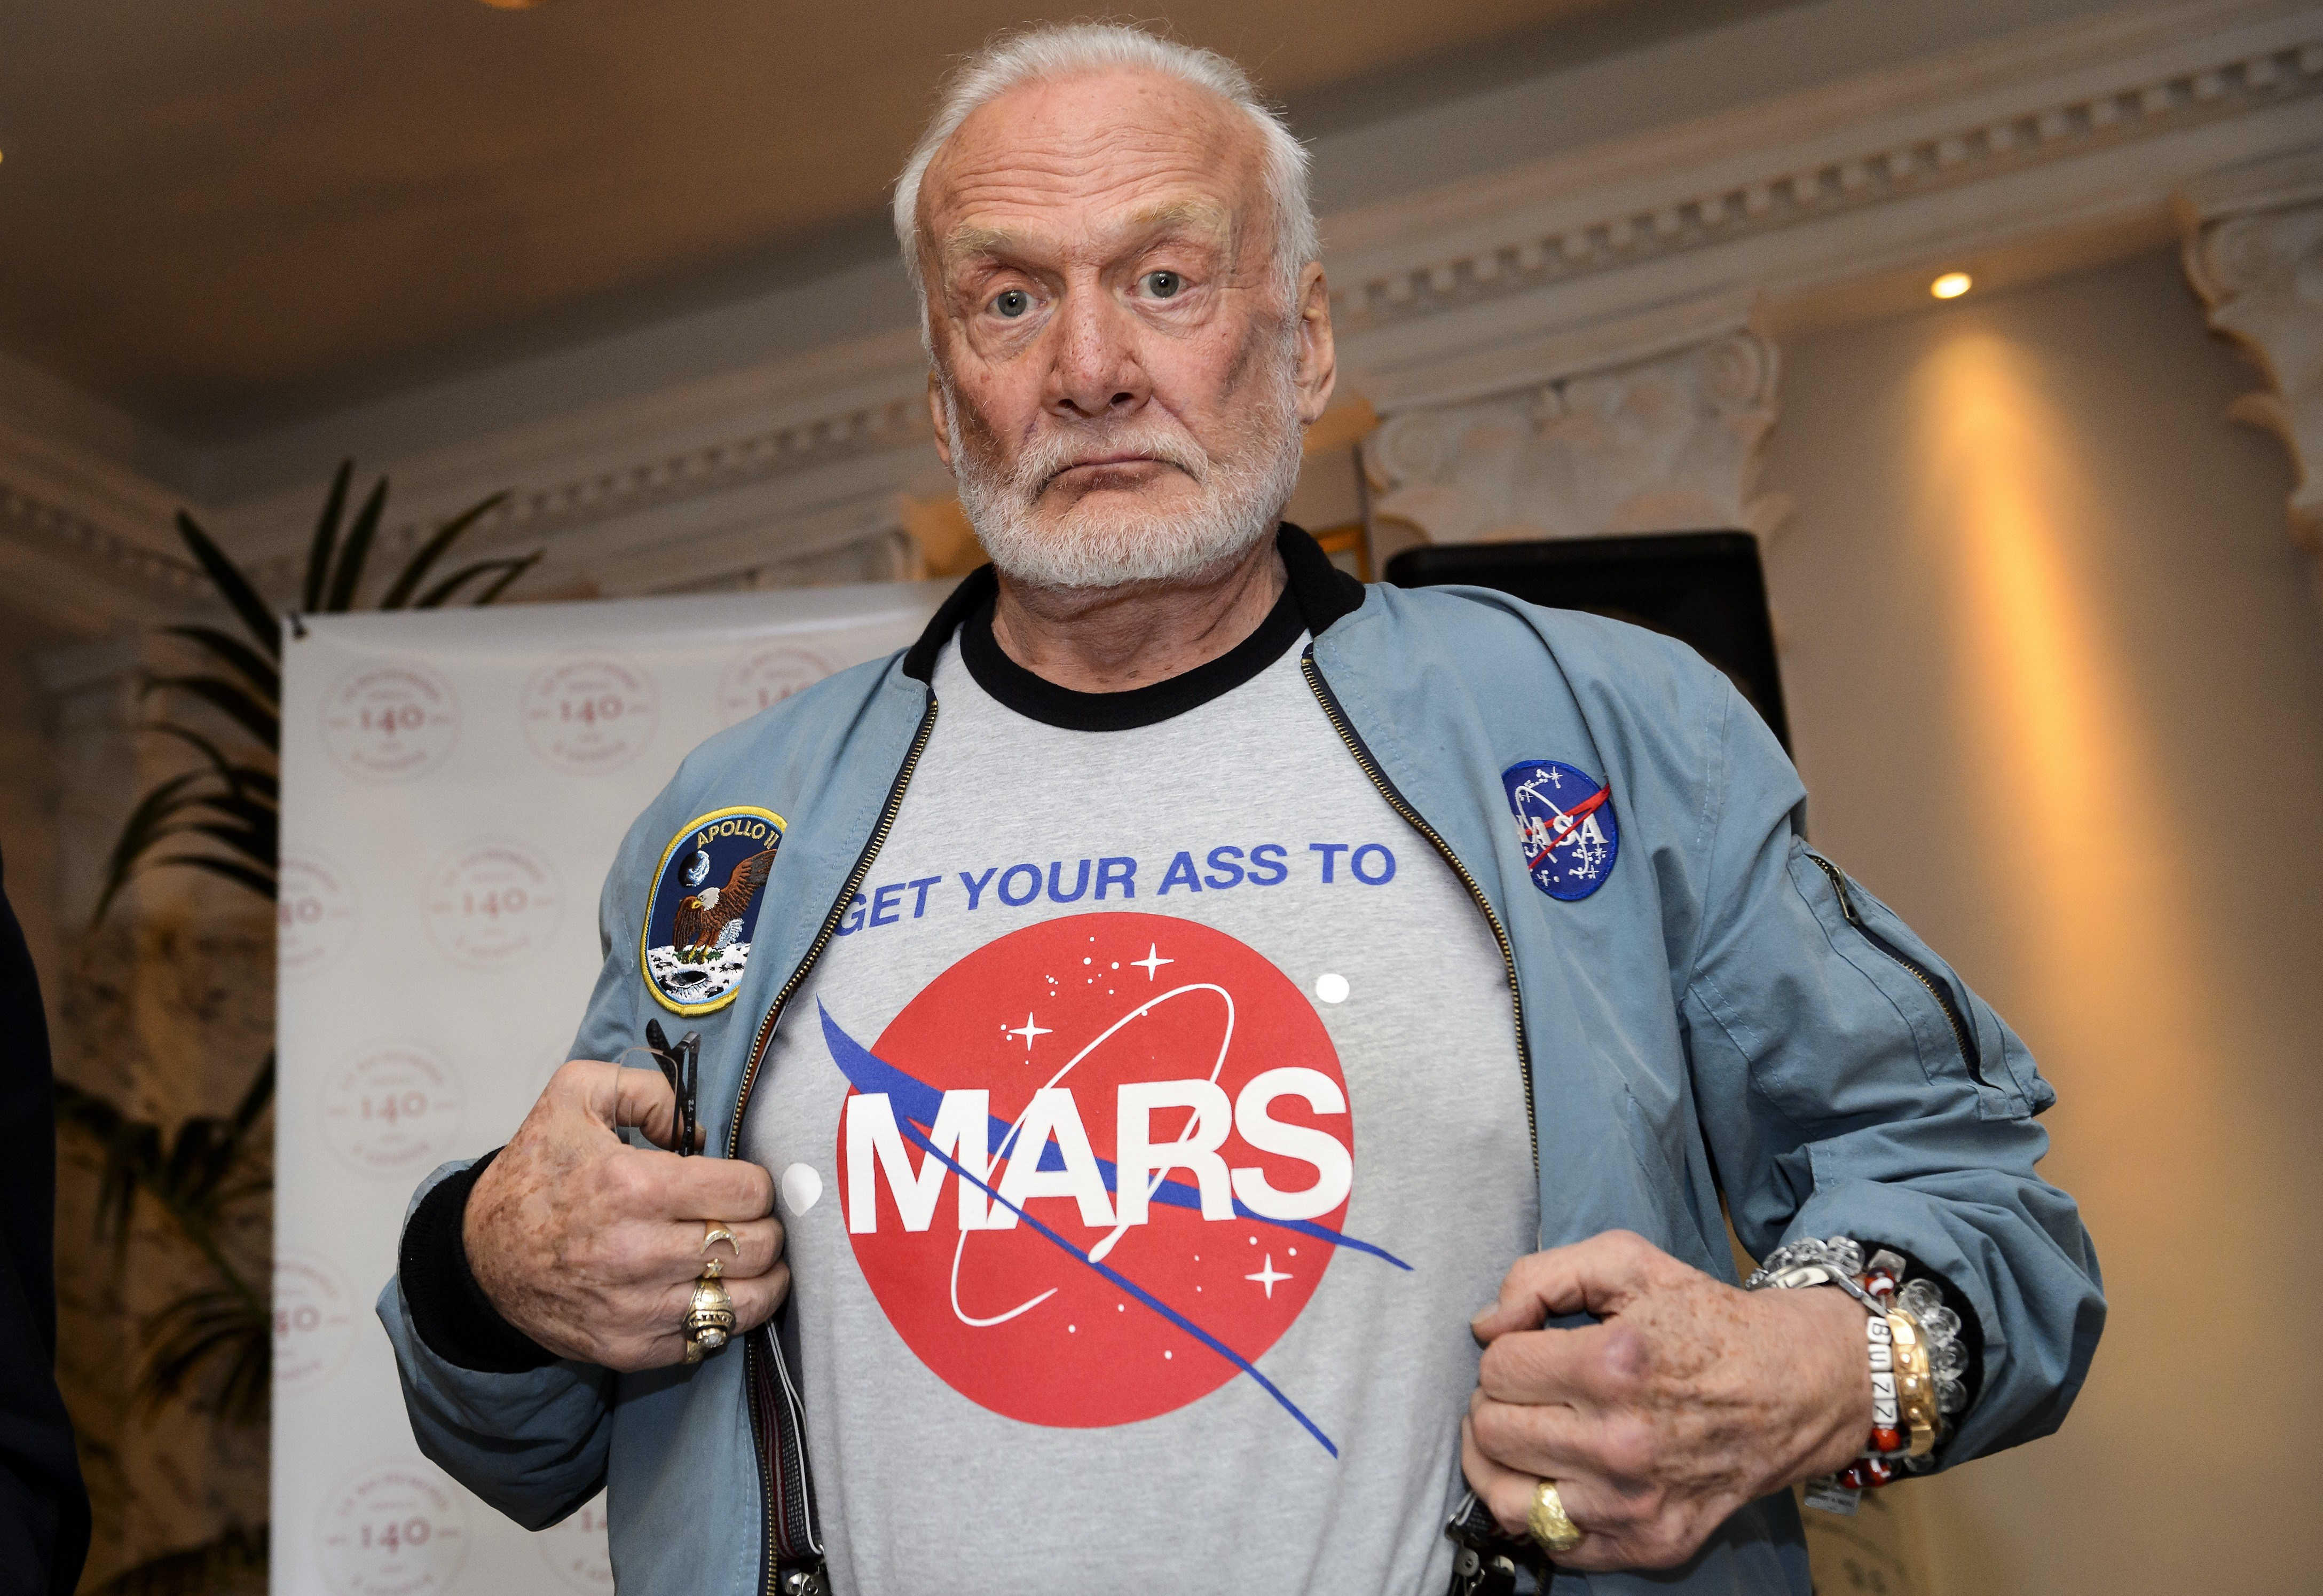 Former NASA astronaut Buzz Aldrin shows the T-shirt he wears promoting Mars exploration on Nov. 12, 2015, in Geneva